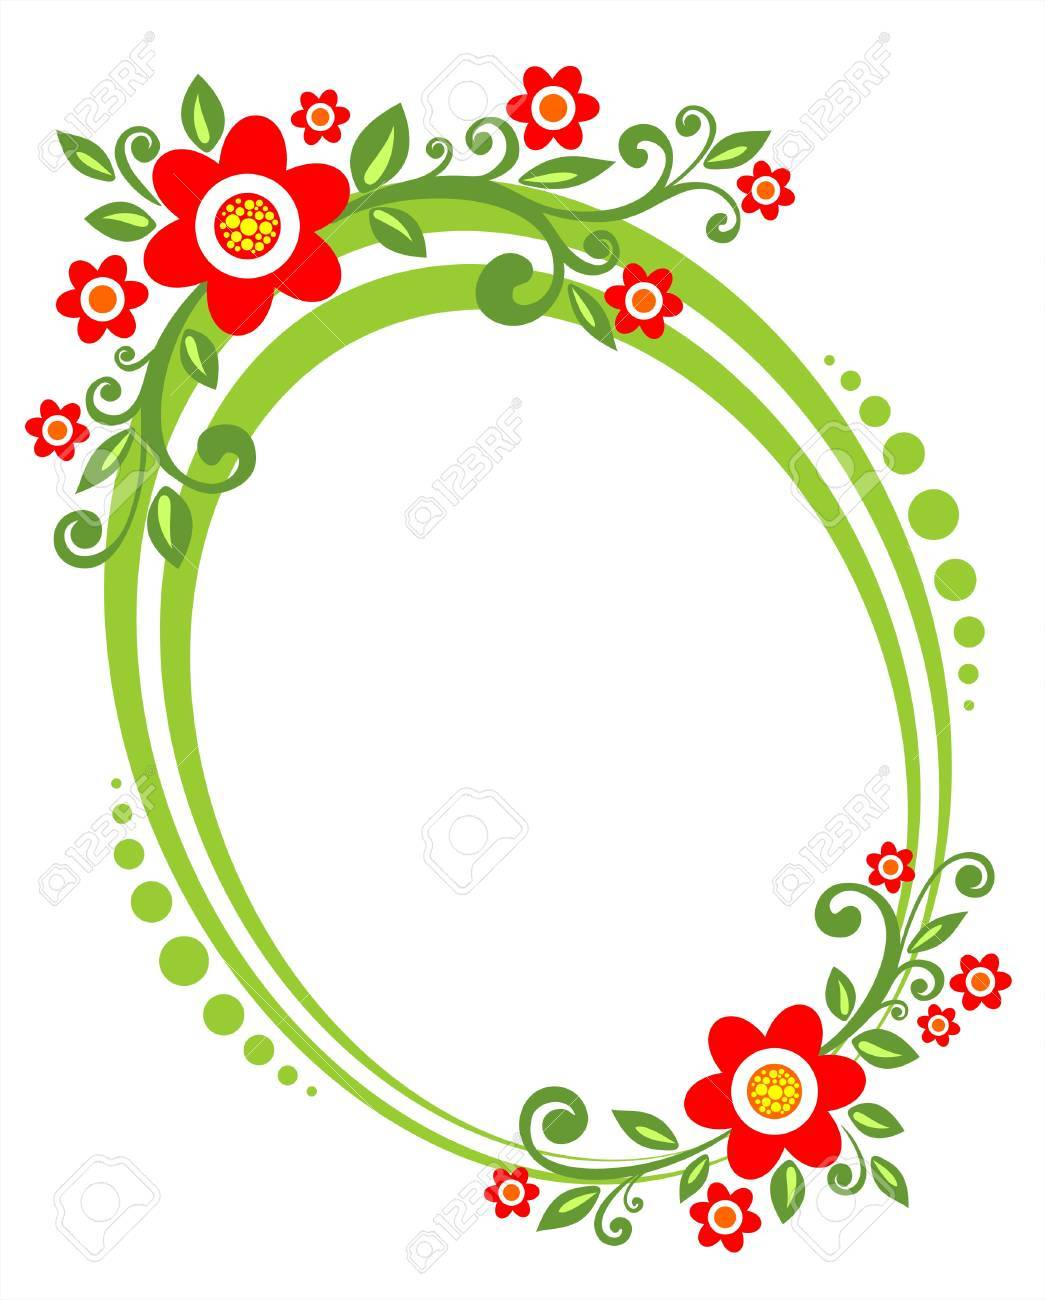 Green framework with a decorative vegetative ornament and red flowers. Stock Vector - 1975692